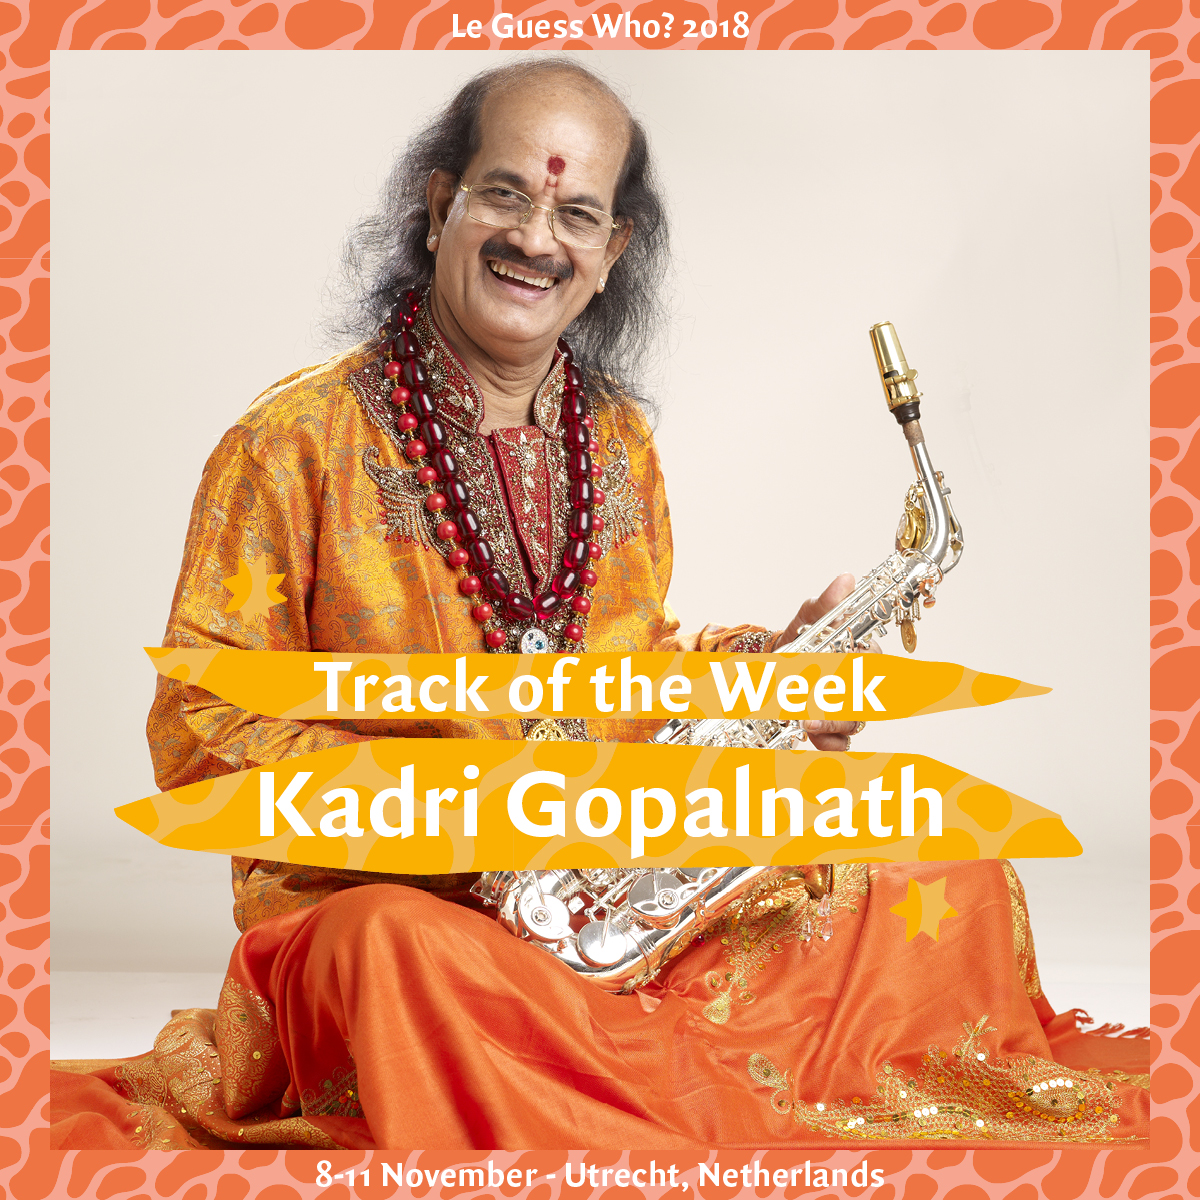 Track of the Week #24: Kadri Gopalnath - 'Bhagyada Lakshmi Baaramma'